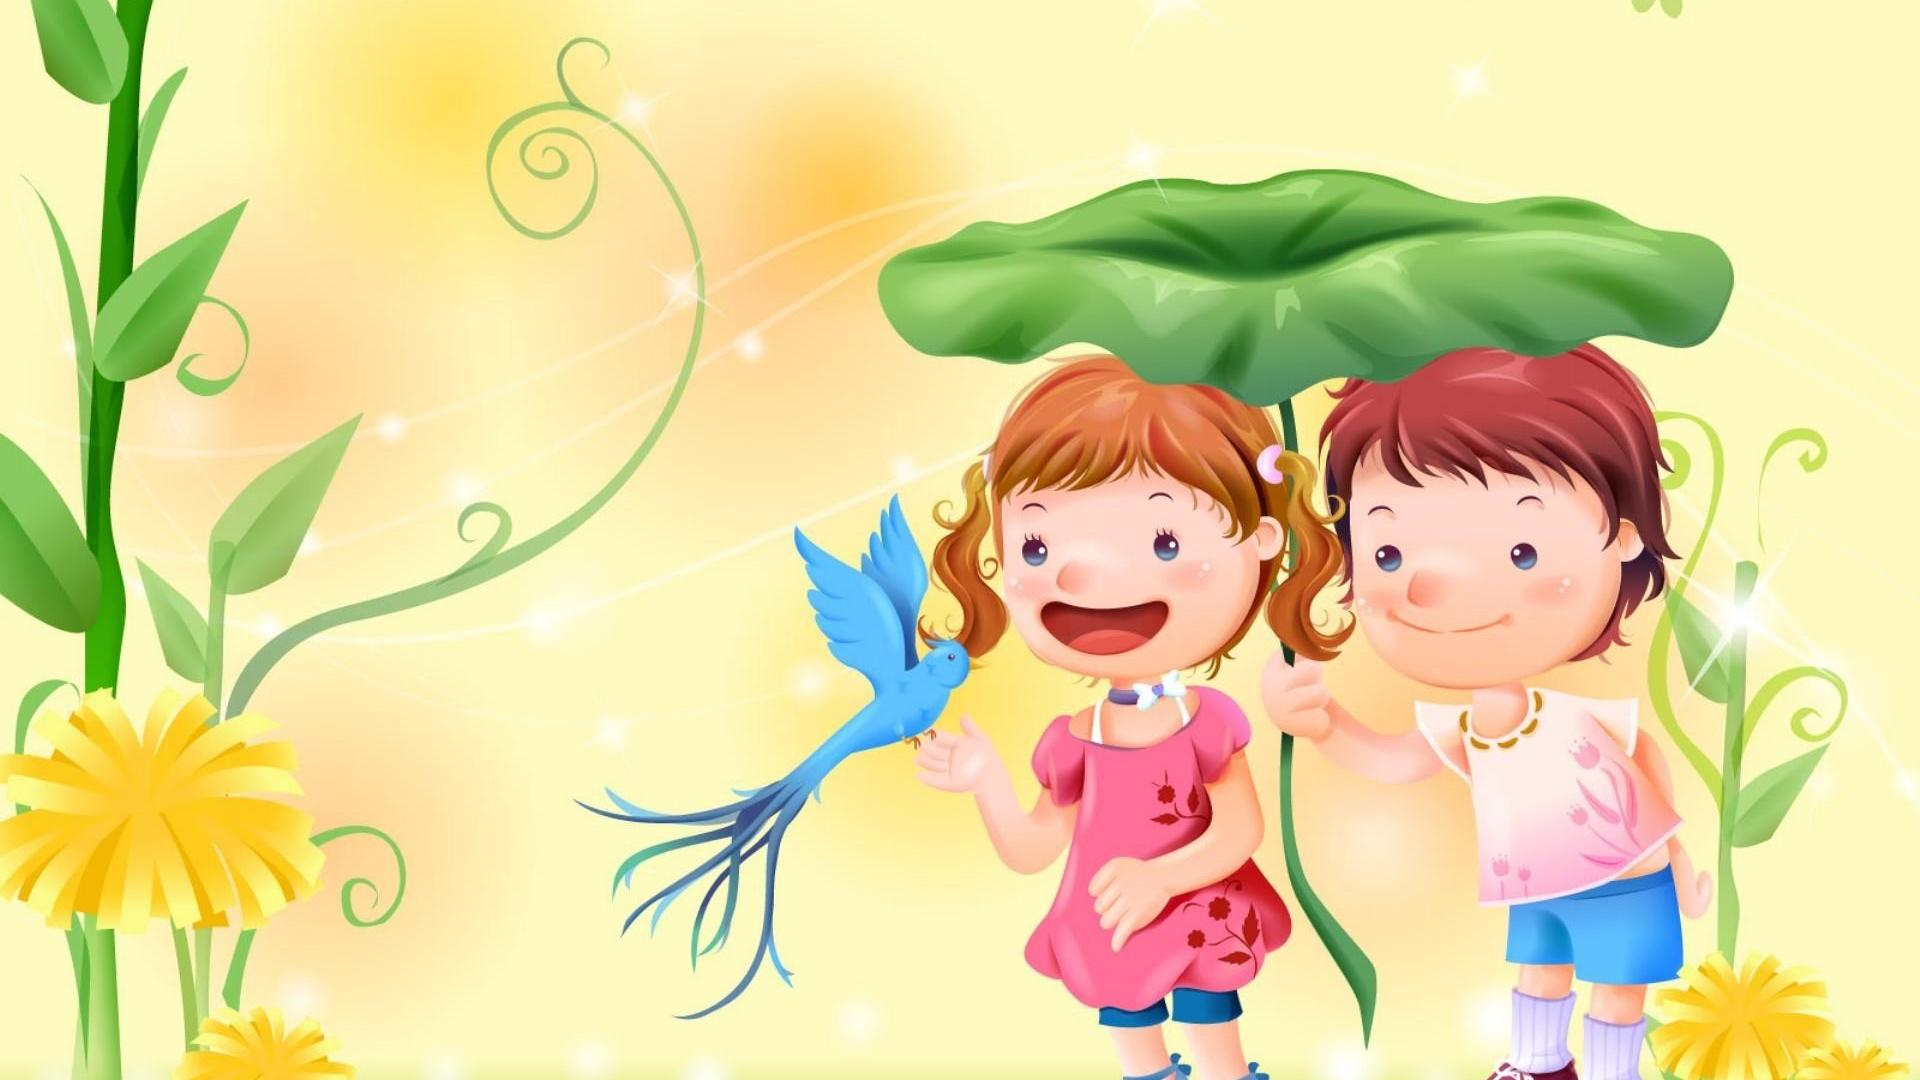 cartoon Type Love Wallpaper : 21 children wallpapers wallpaper other cartoons romantic cartoon HD 603 :: children Love Hd ...